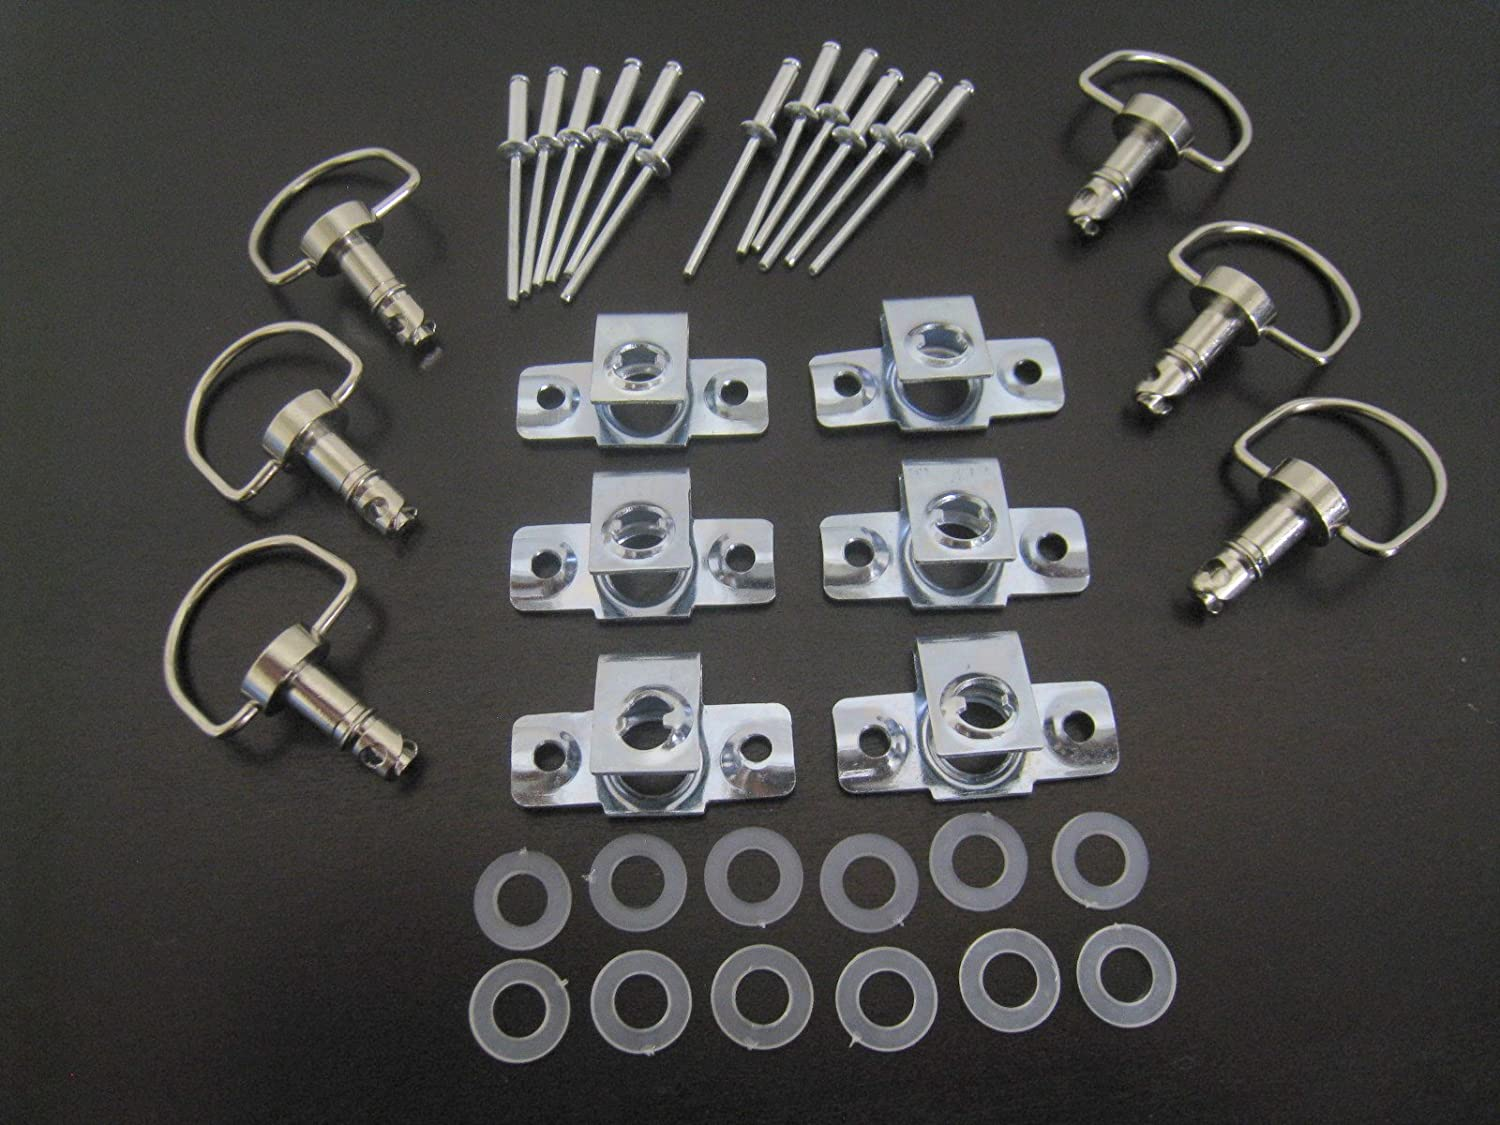 1//4 Turn Quick Release Race Fasteners with Rivets 6 Pack DzusType Panex D-Ring Length 17mm CaliBikerClub